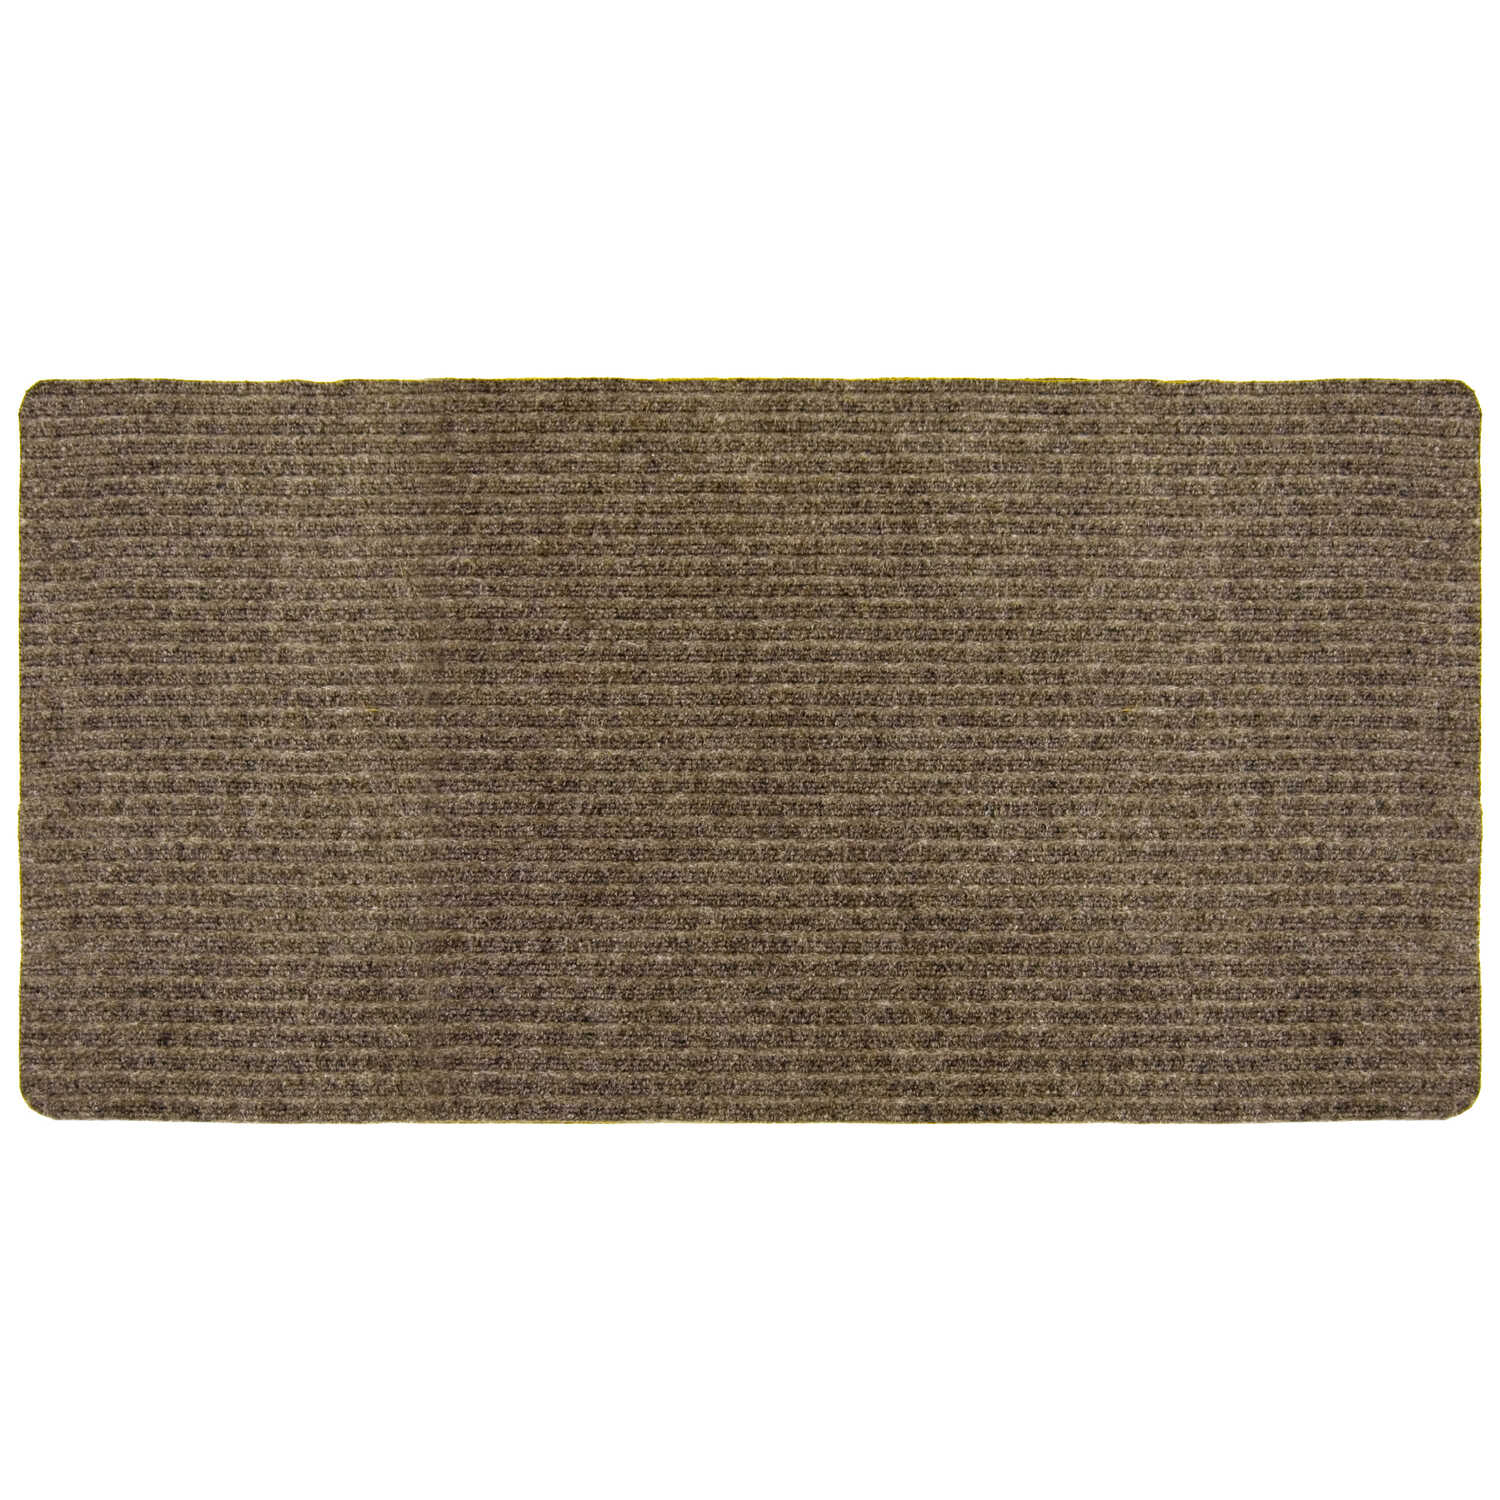 Multy Home  Concord  Nonslip 36 in. W x 50 ft. L Tan  Carpet Runner